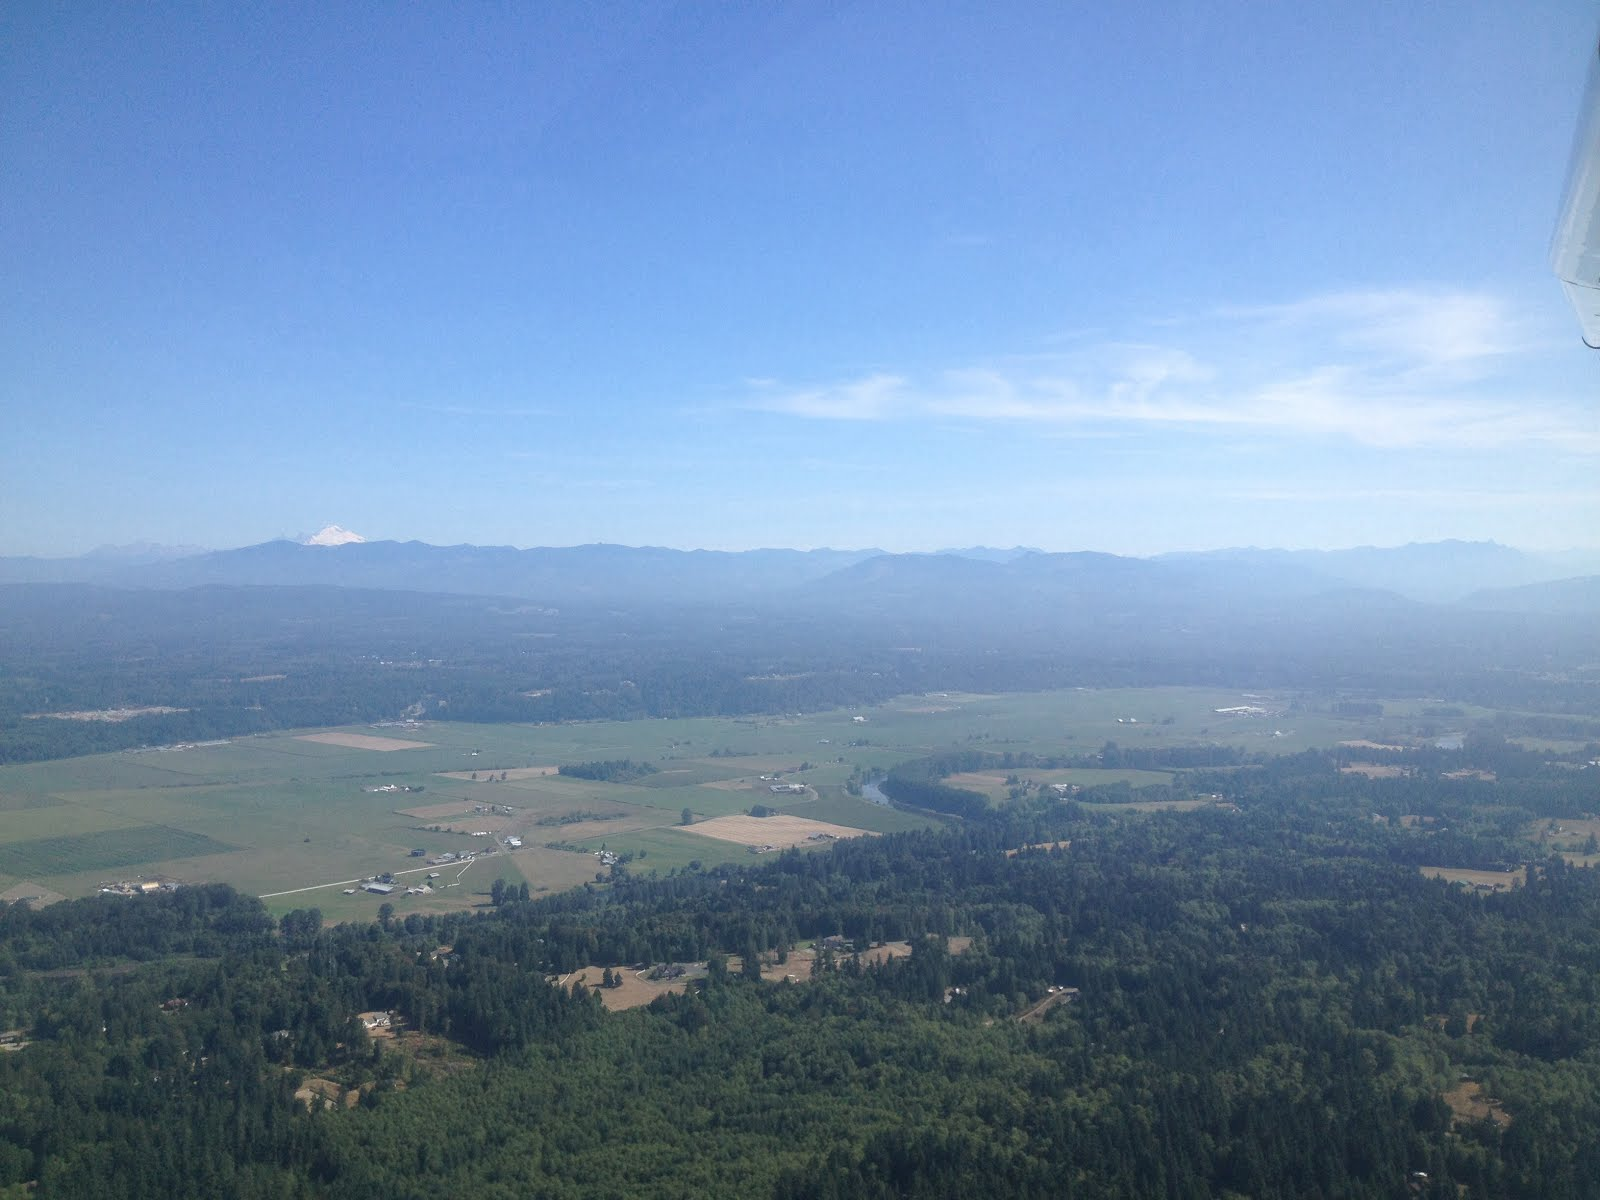 Yesterday's flight to Bellingham.